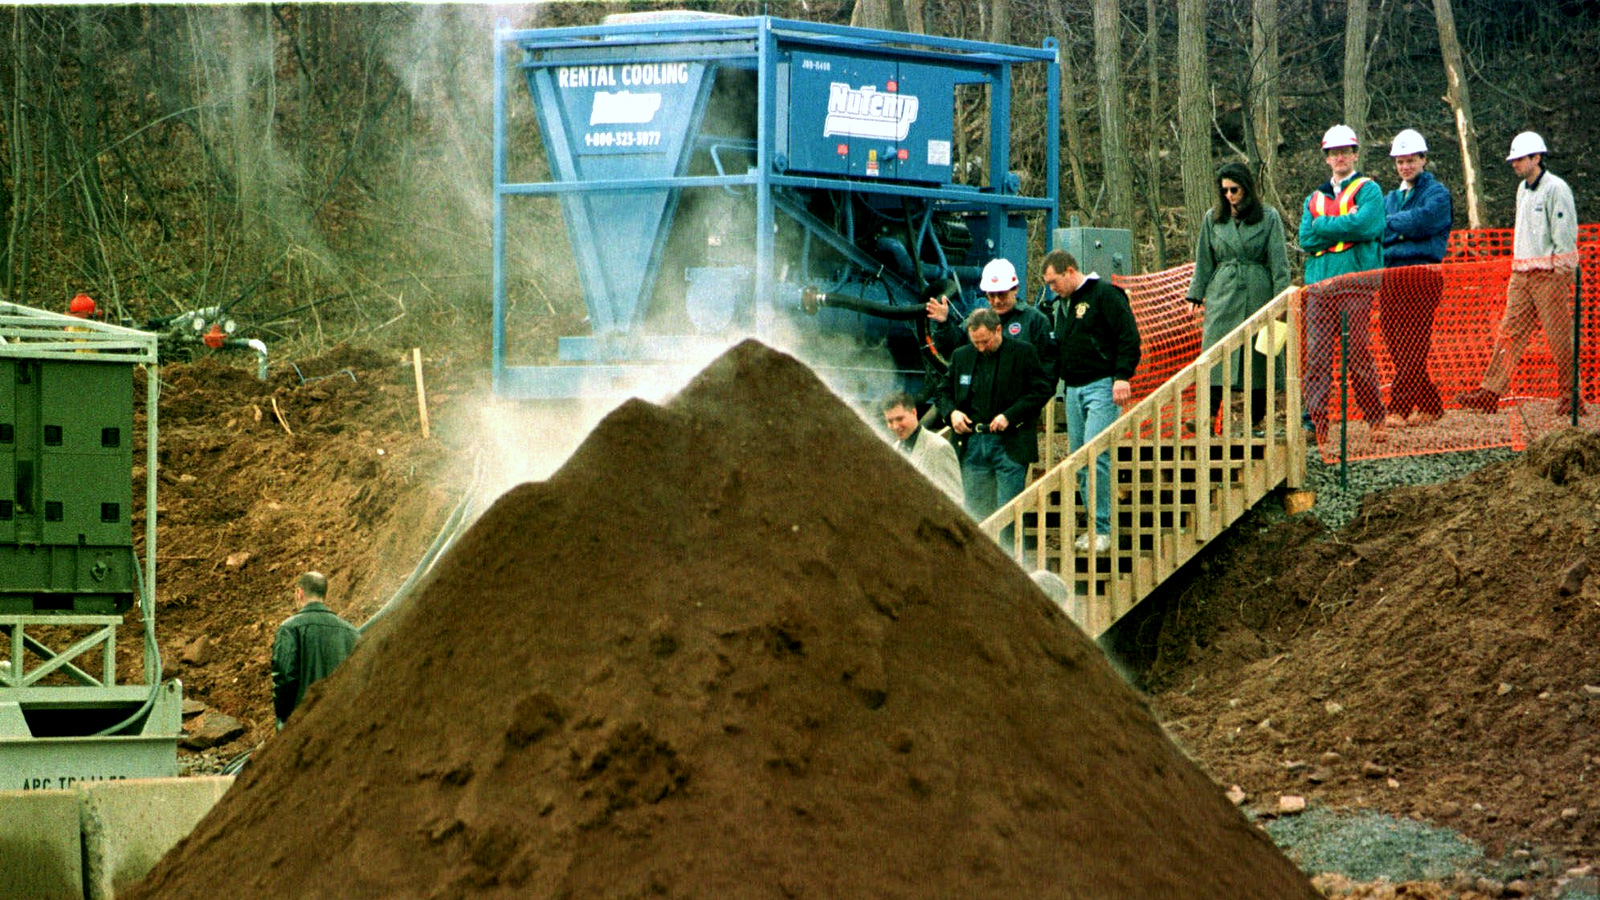 U.S. Environmental Protection Agency officials and visitors walk past a steaming mound of decontaminated soil during a tour of the Industrial Latex Superfund site in Wallington, N.J., Friday, Feb. 12, 1999. (AP Photo/Mike Derer)